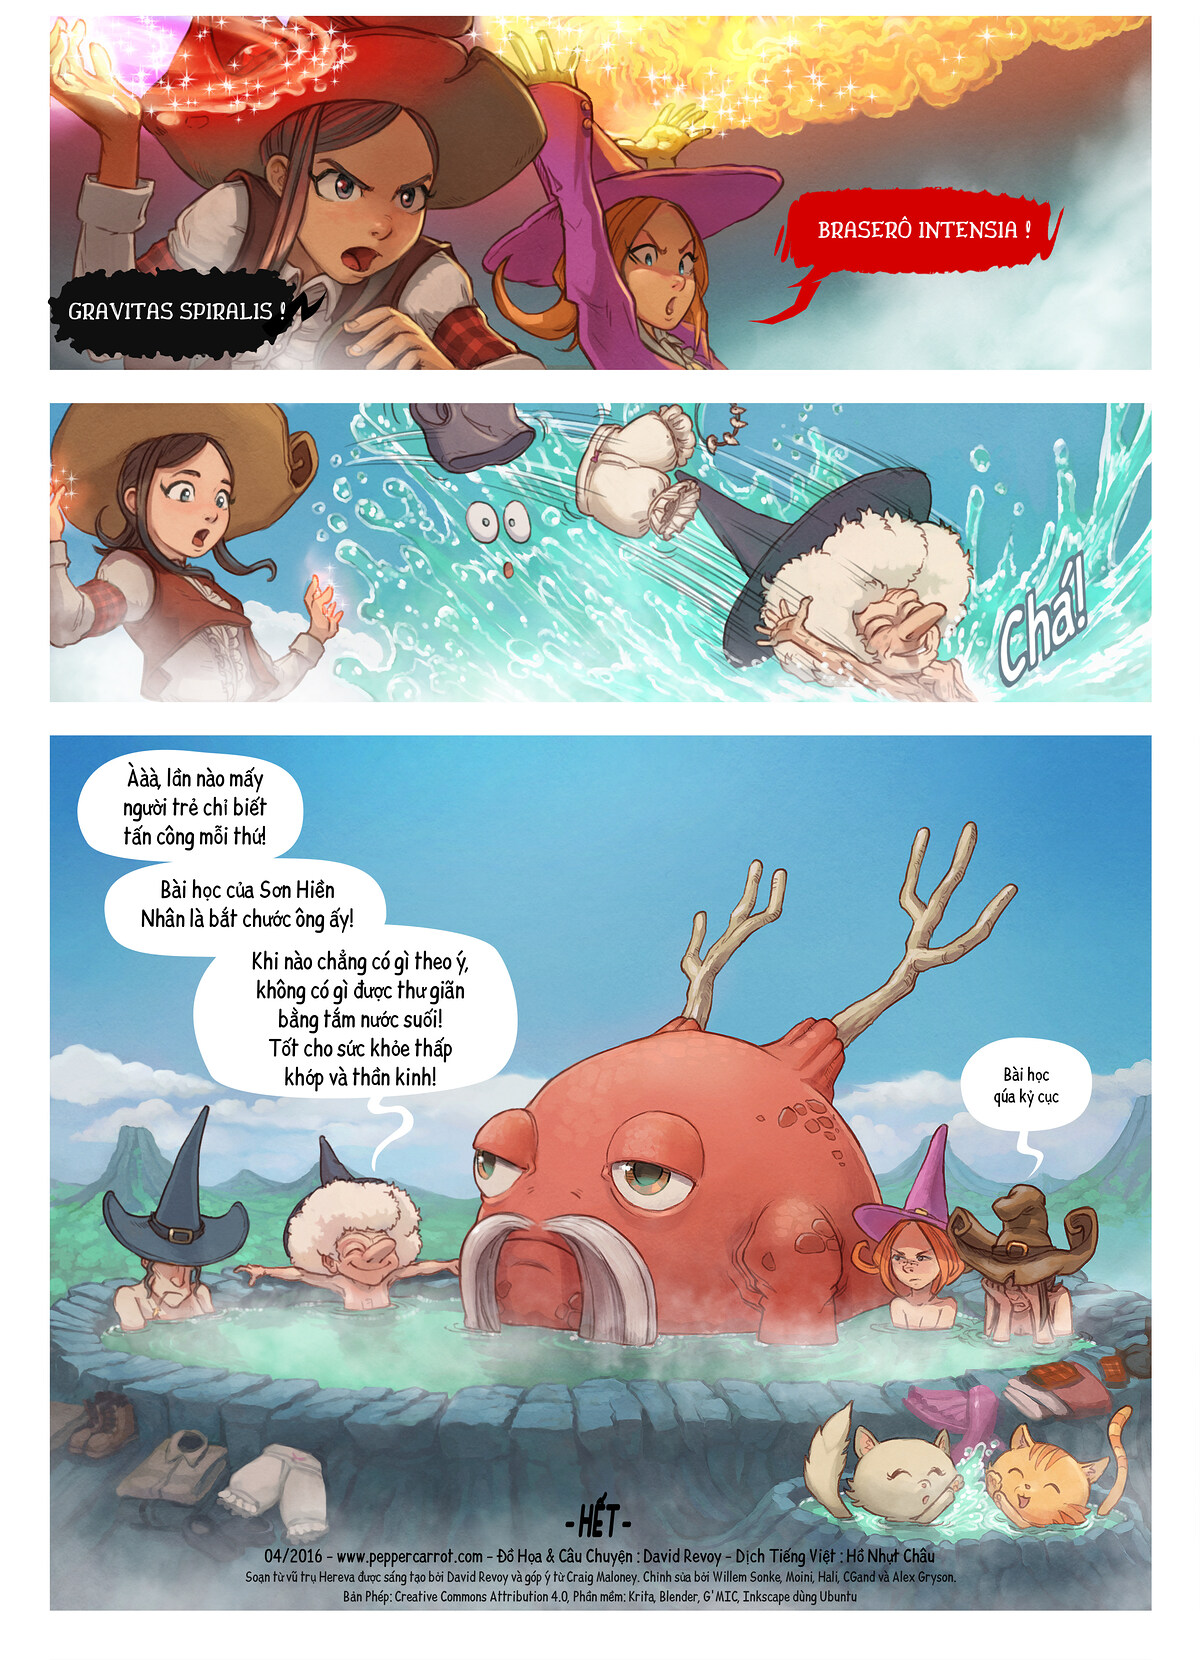 A webcomic page of Pepper&Carrot, Tập 16 [vi], trang 6